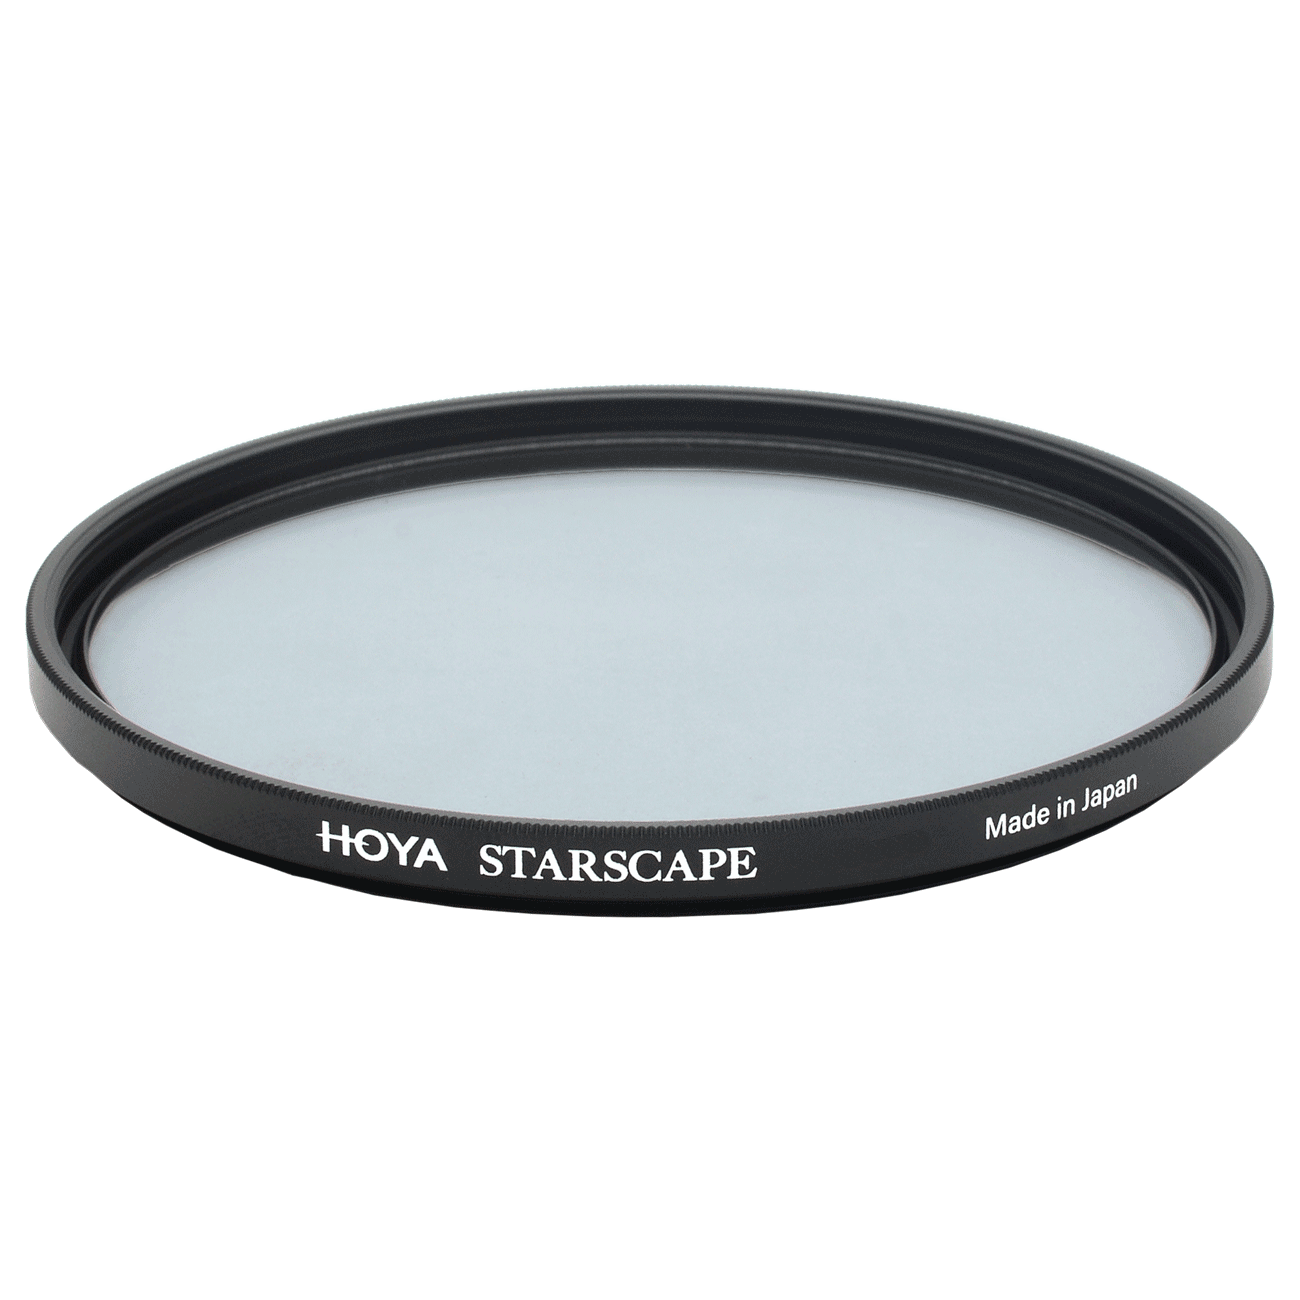 Hoya 52mm Starscape Filter